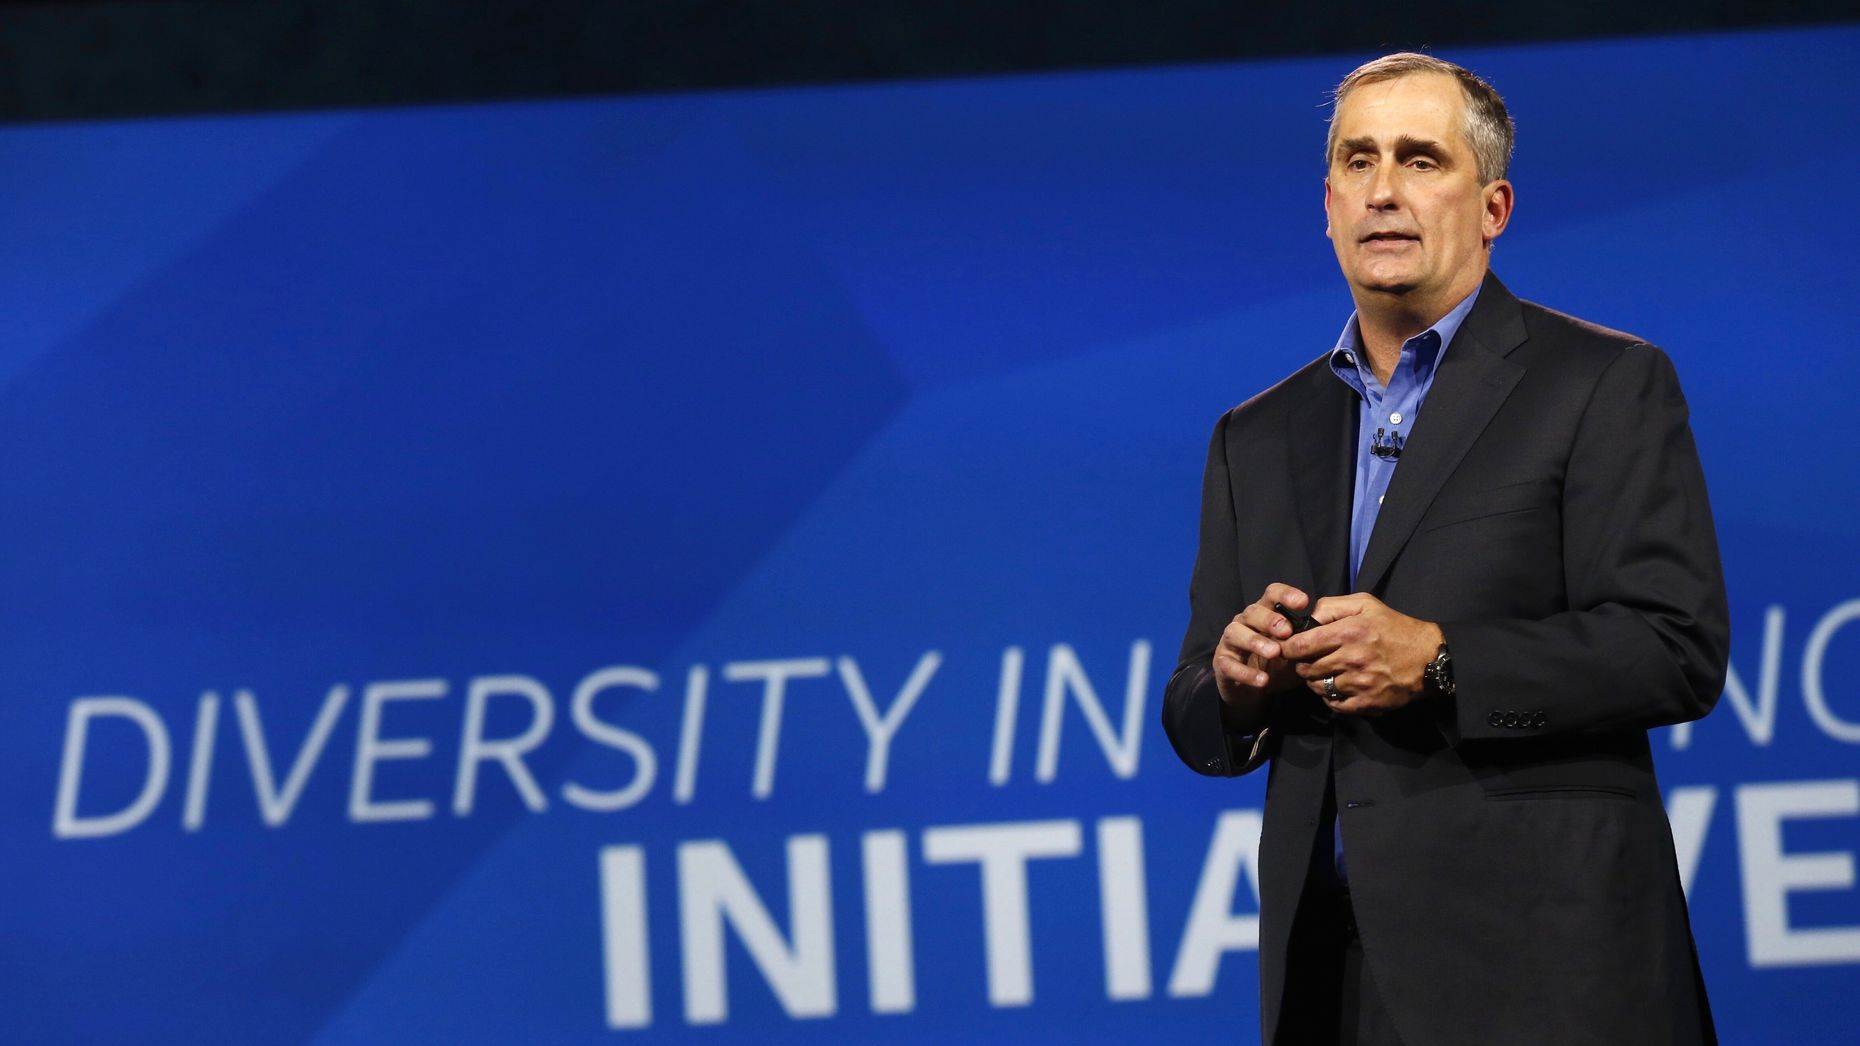 Intel CEO Brian Krzanich. Photo by Bloomberg